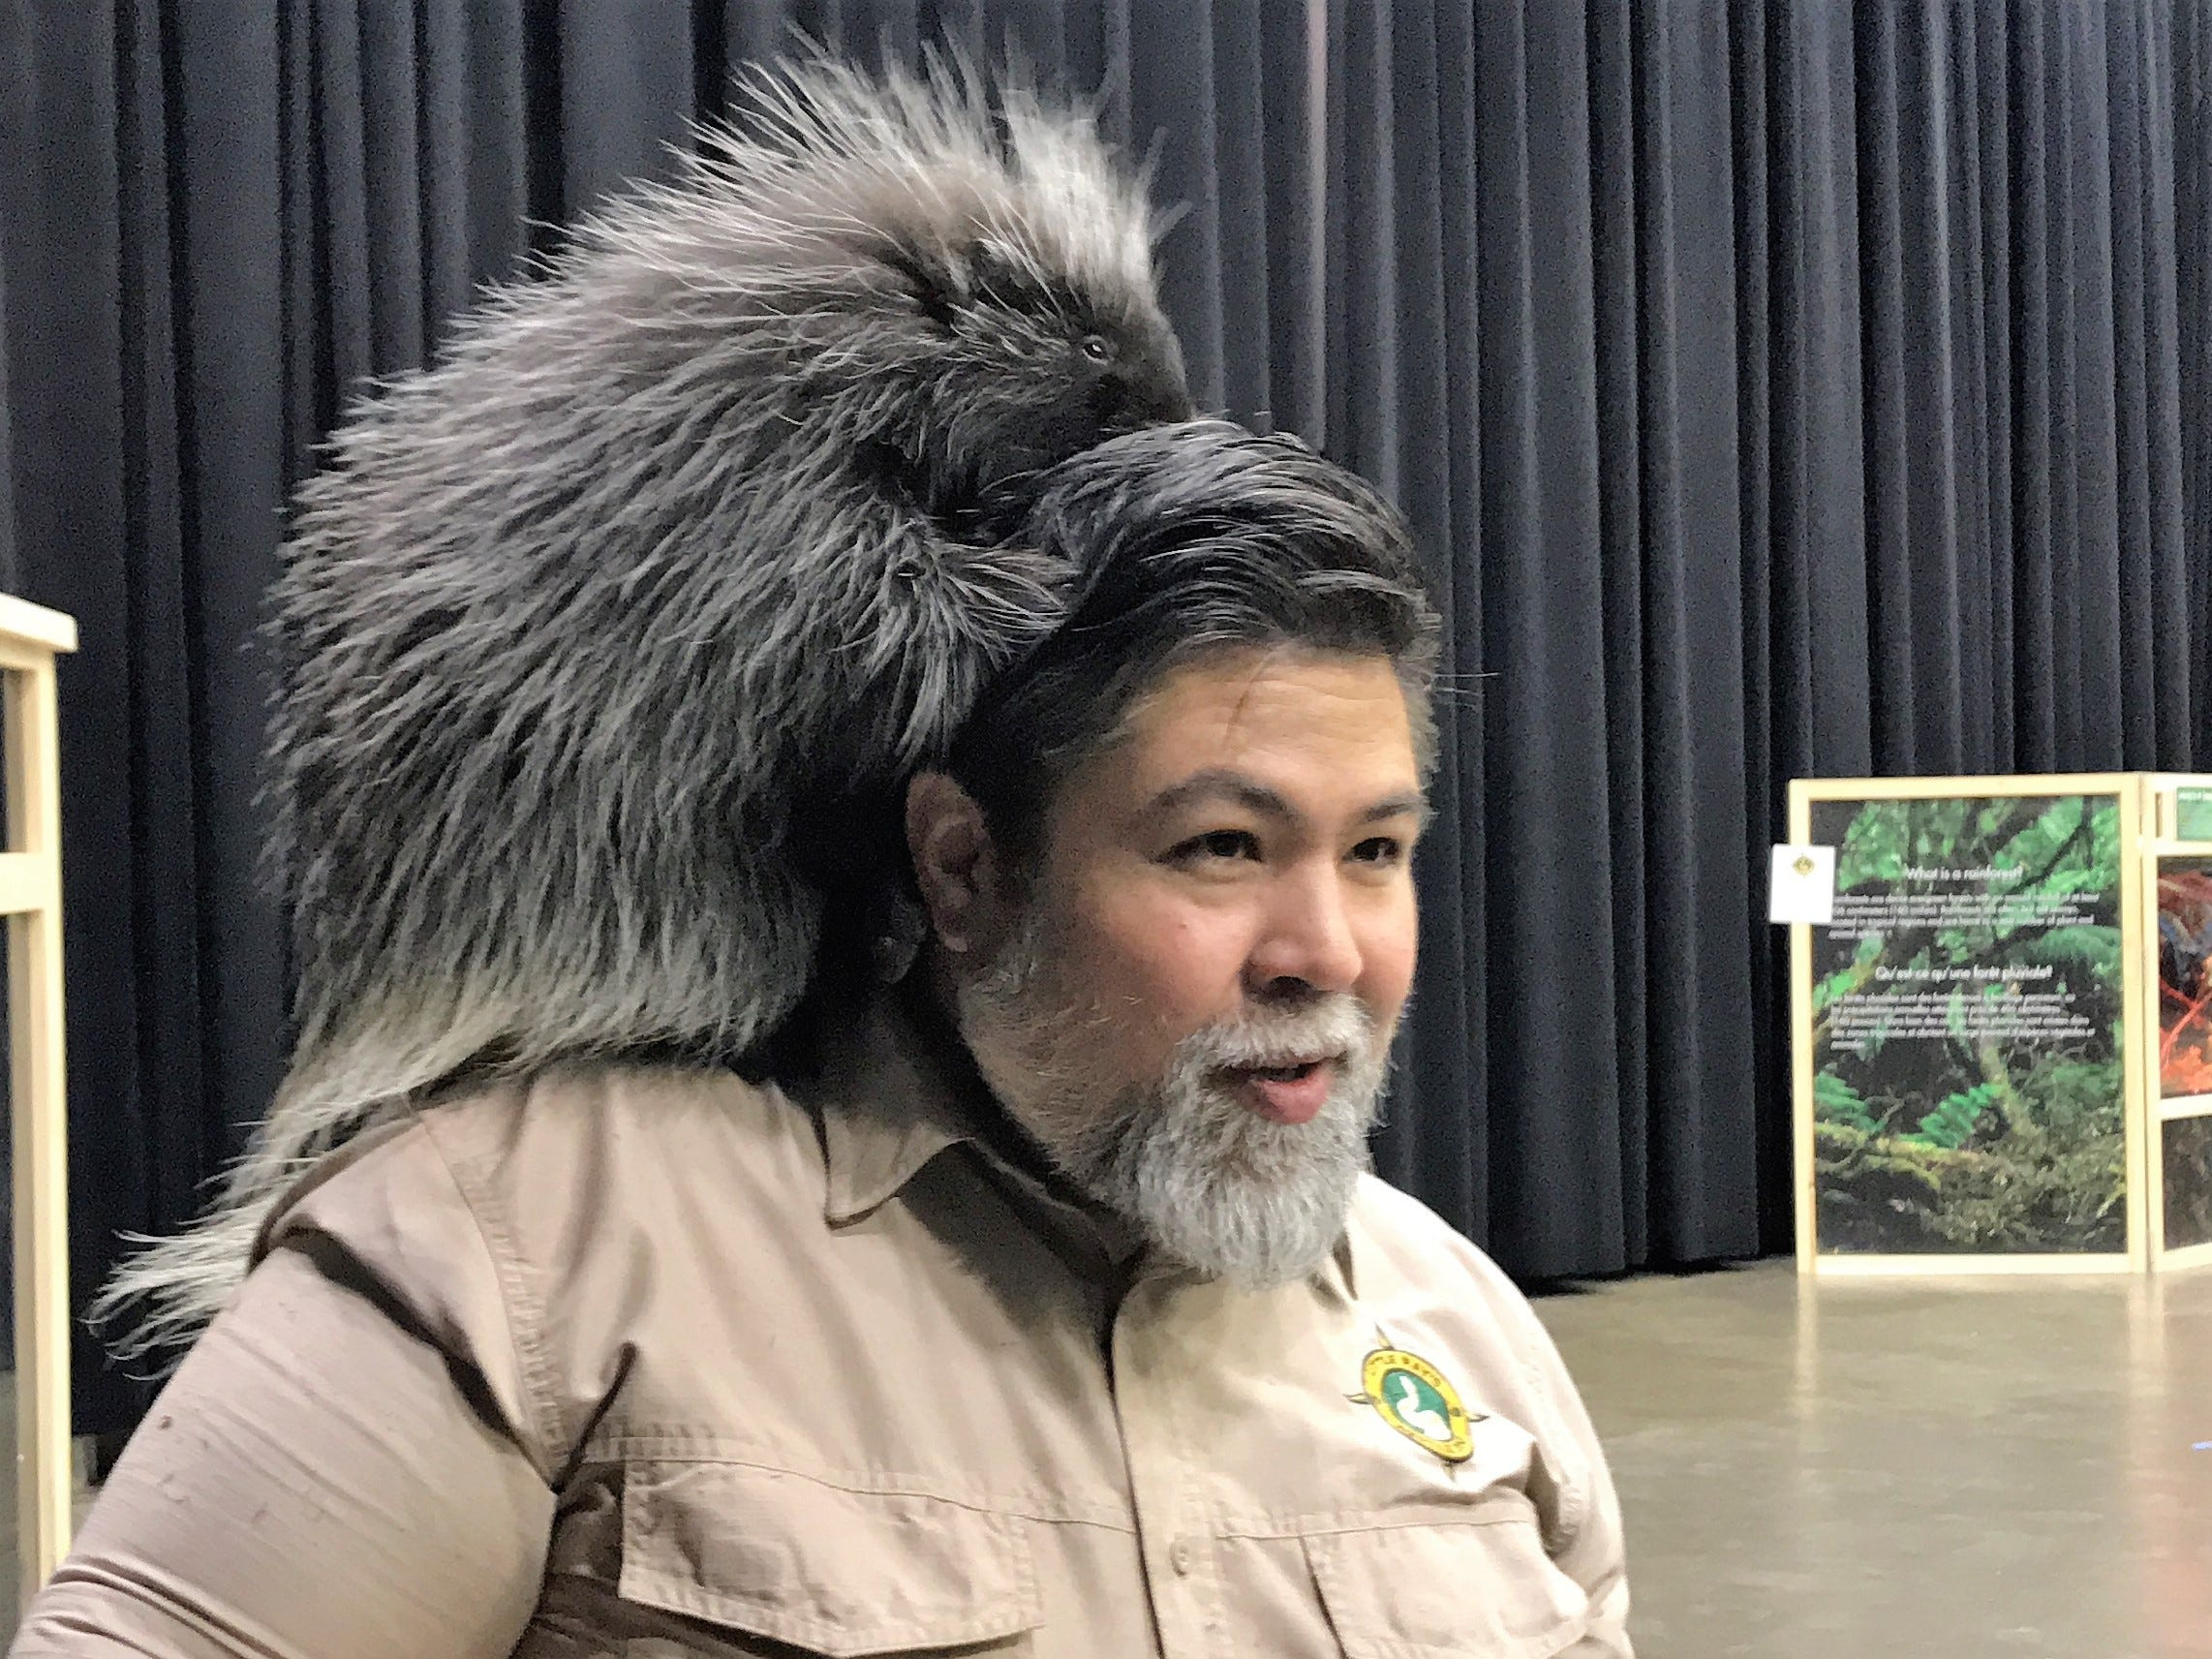 Andre Ngo of Little Ray's Nature Centers gets a grooming from Quilber Thistlebeaver III at the Natural History Exhibition on Nov. 17, 2018. Little Ray's Nature Centers and ZooAmerica coordinated with the Foundation for Animal Rescue and Education for the weekend-long exhibit, held at the Mid-Hudson Civic Center in Poughkeepsie. It also features a sloth, an armadillo, rabbits, snakes and more.